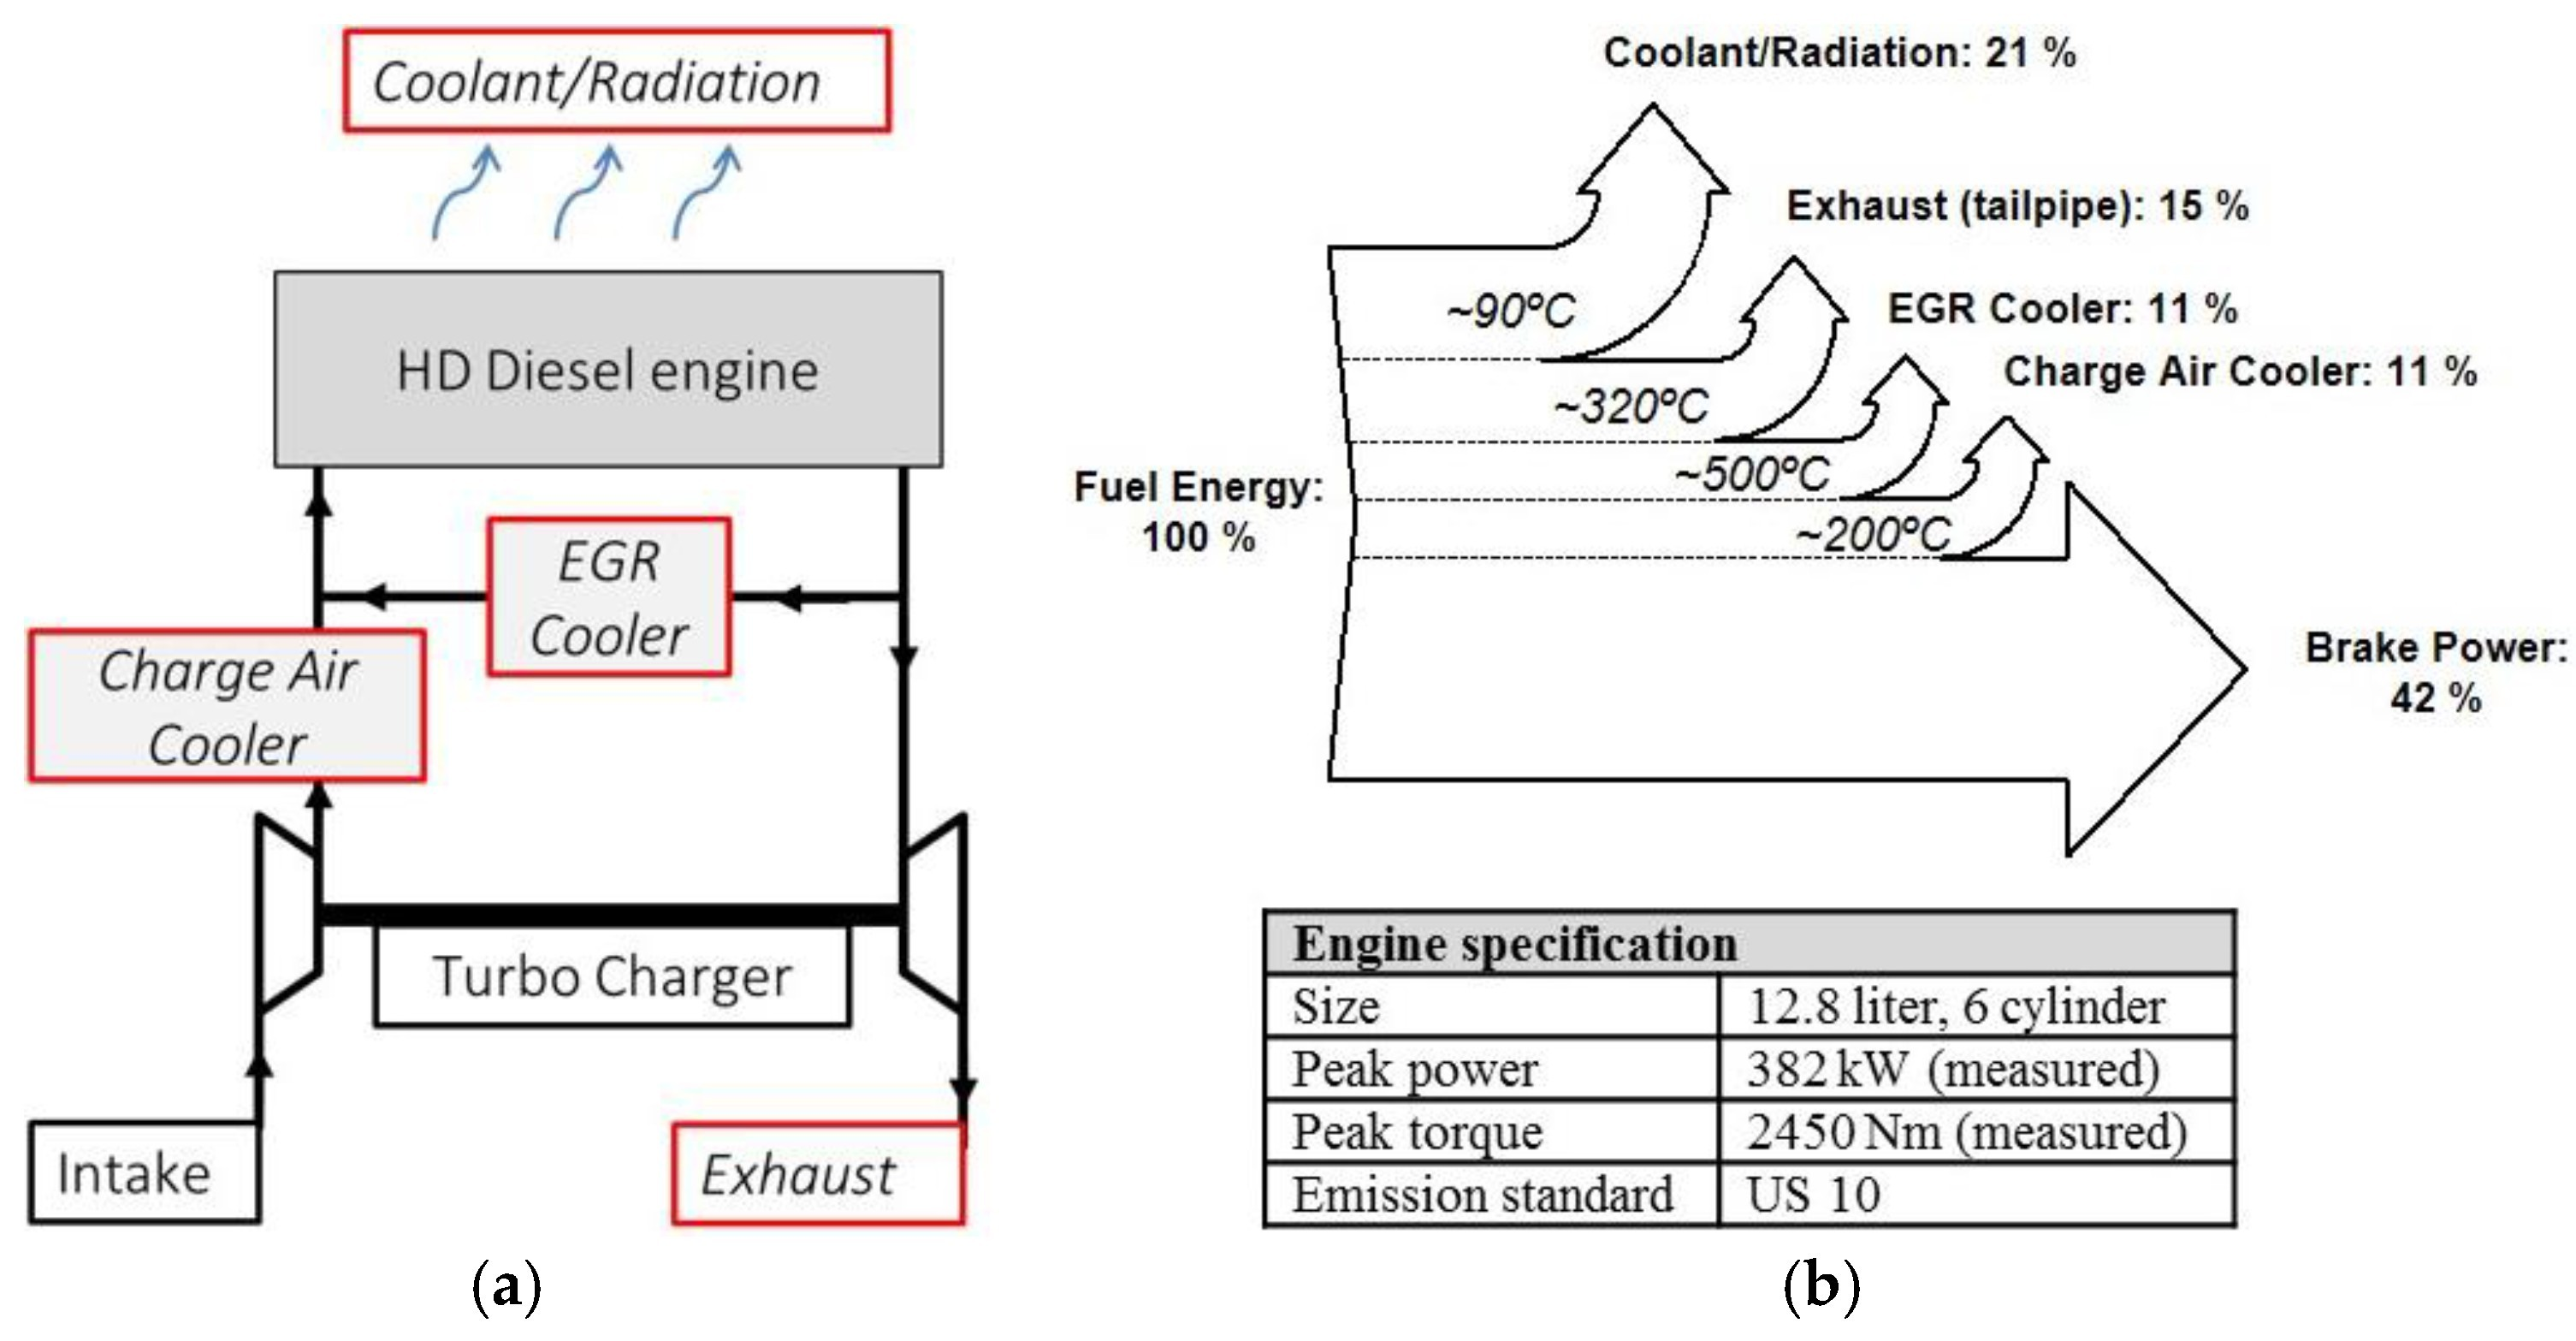 Diagram Of An Internal Combustion Engine Internal Bustion Engine Diagram Energies Free Full Text – My Of Diagram Of An Internal Combustion Engine